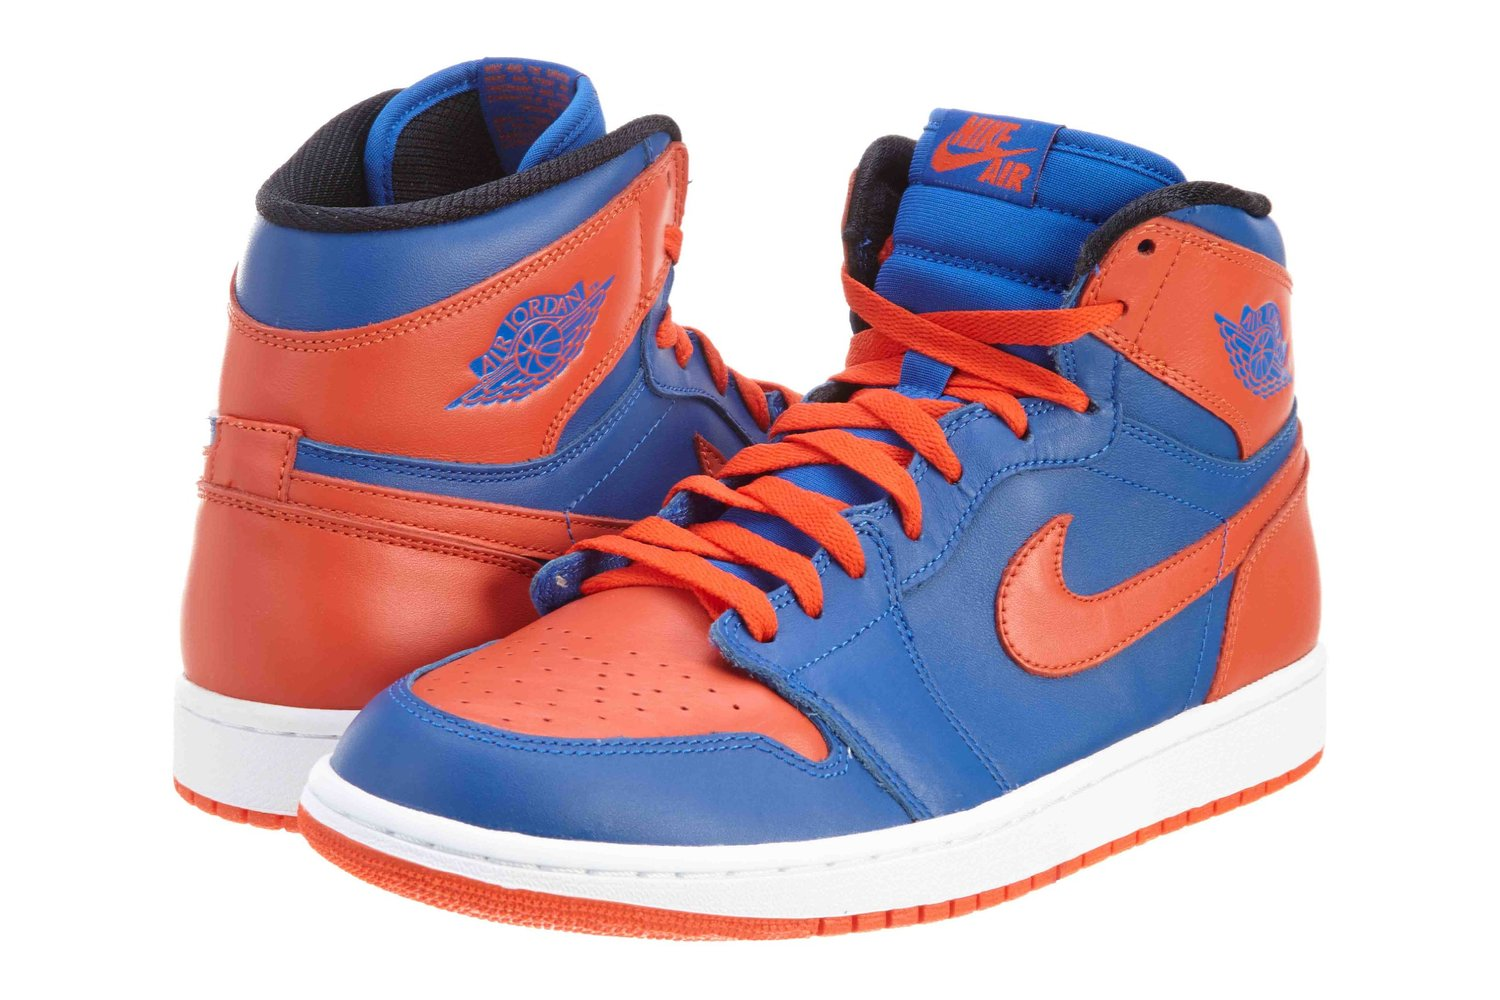 a8a88dc40852d0 Buy Nike Mens Air Jordan 1 Retro High OG